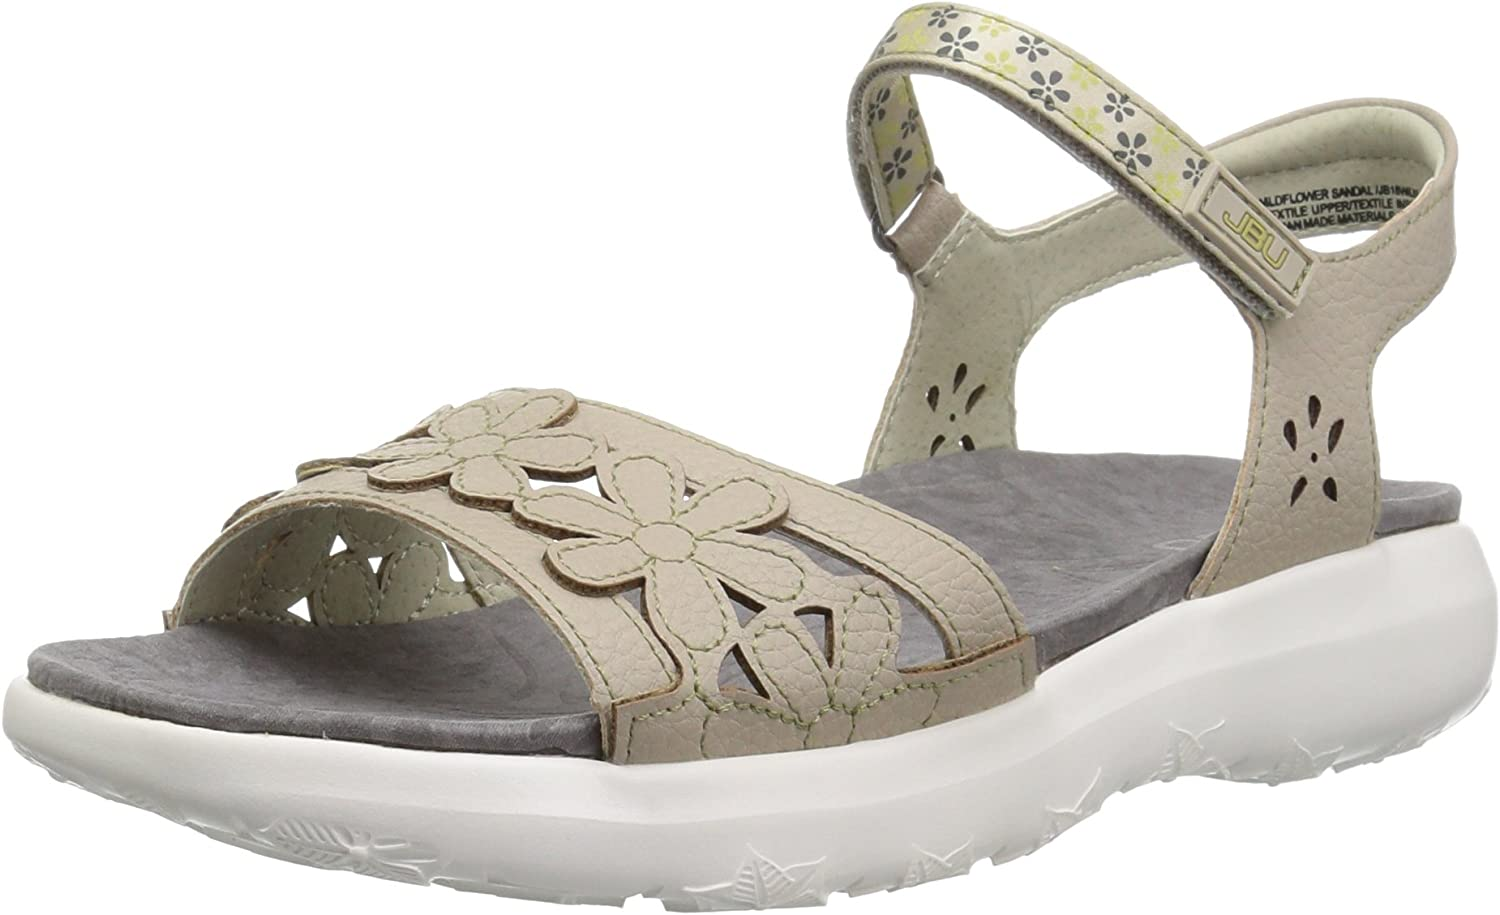 Jambu Womens Wildflower Sandal Sandal